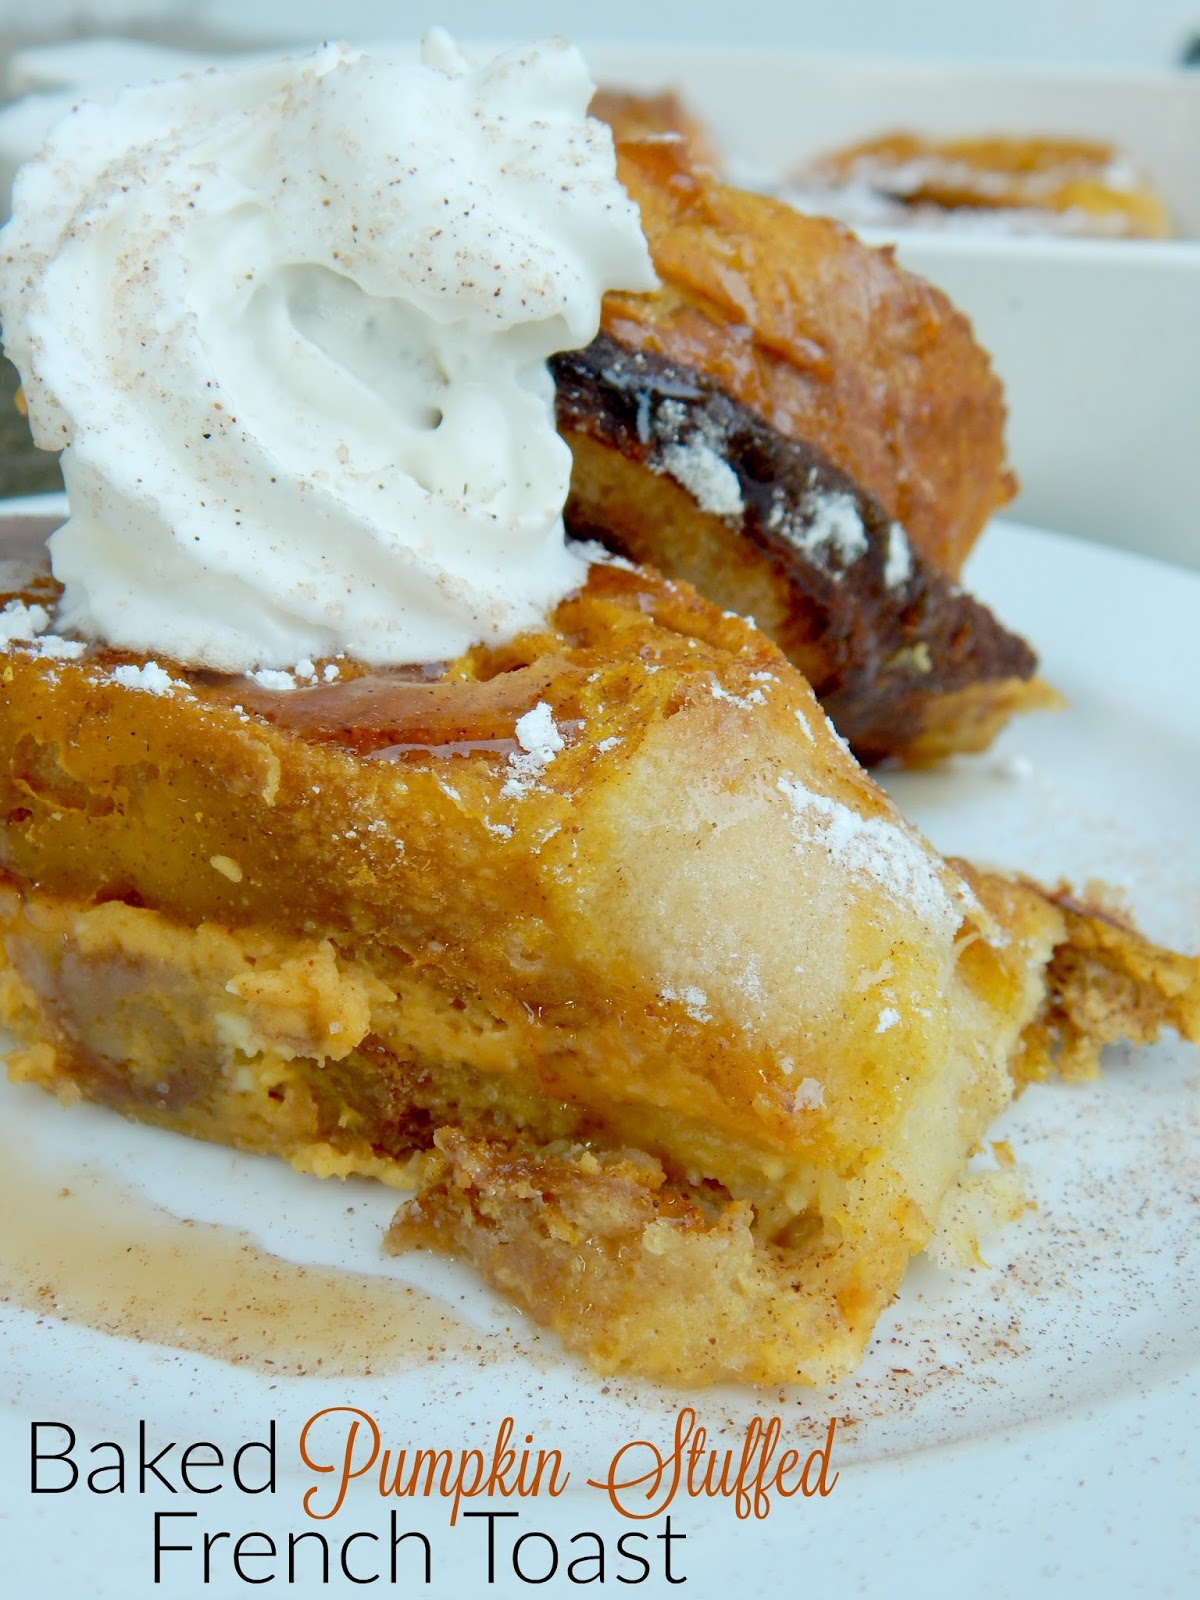 Ally's Sweet and Savory Eats: Baked Pumpkin Stuffed French Toast